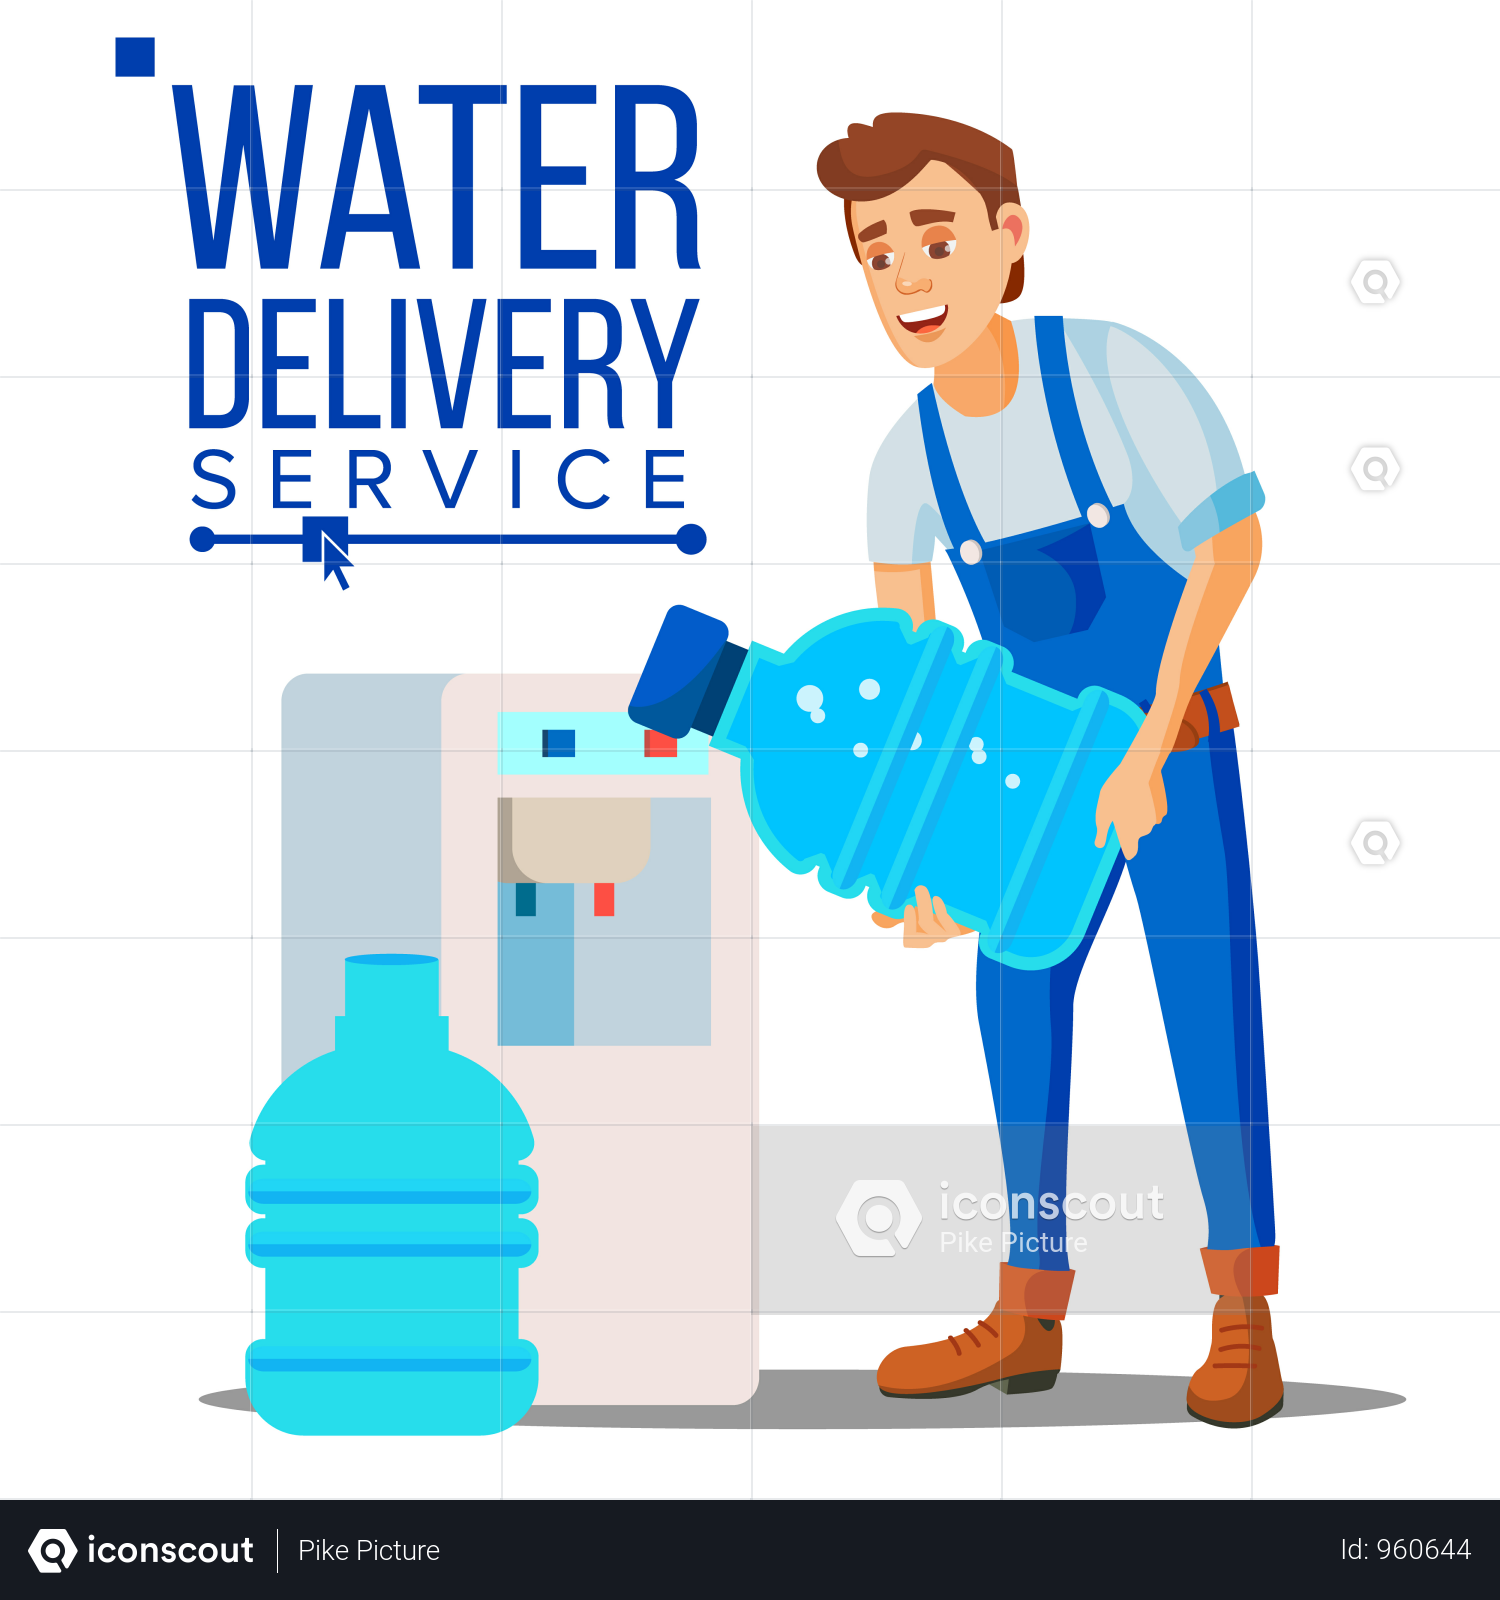 Premium Water Delivery Service Man Vector Illustration Download In Png Vector Format Water Delivery Service Water Delivery Delivery Service